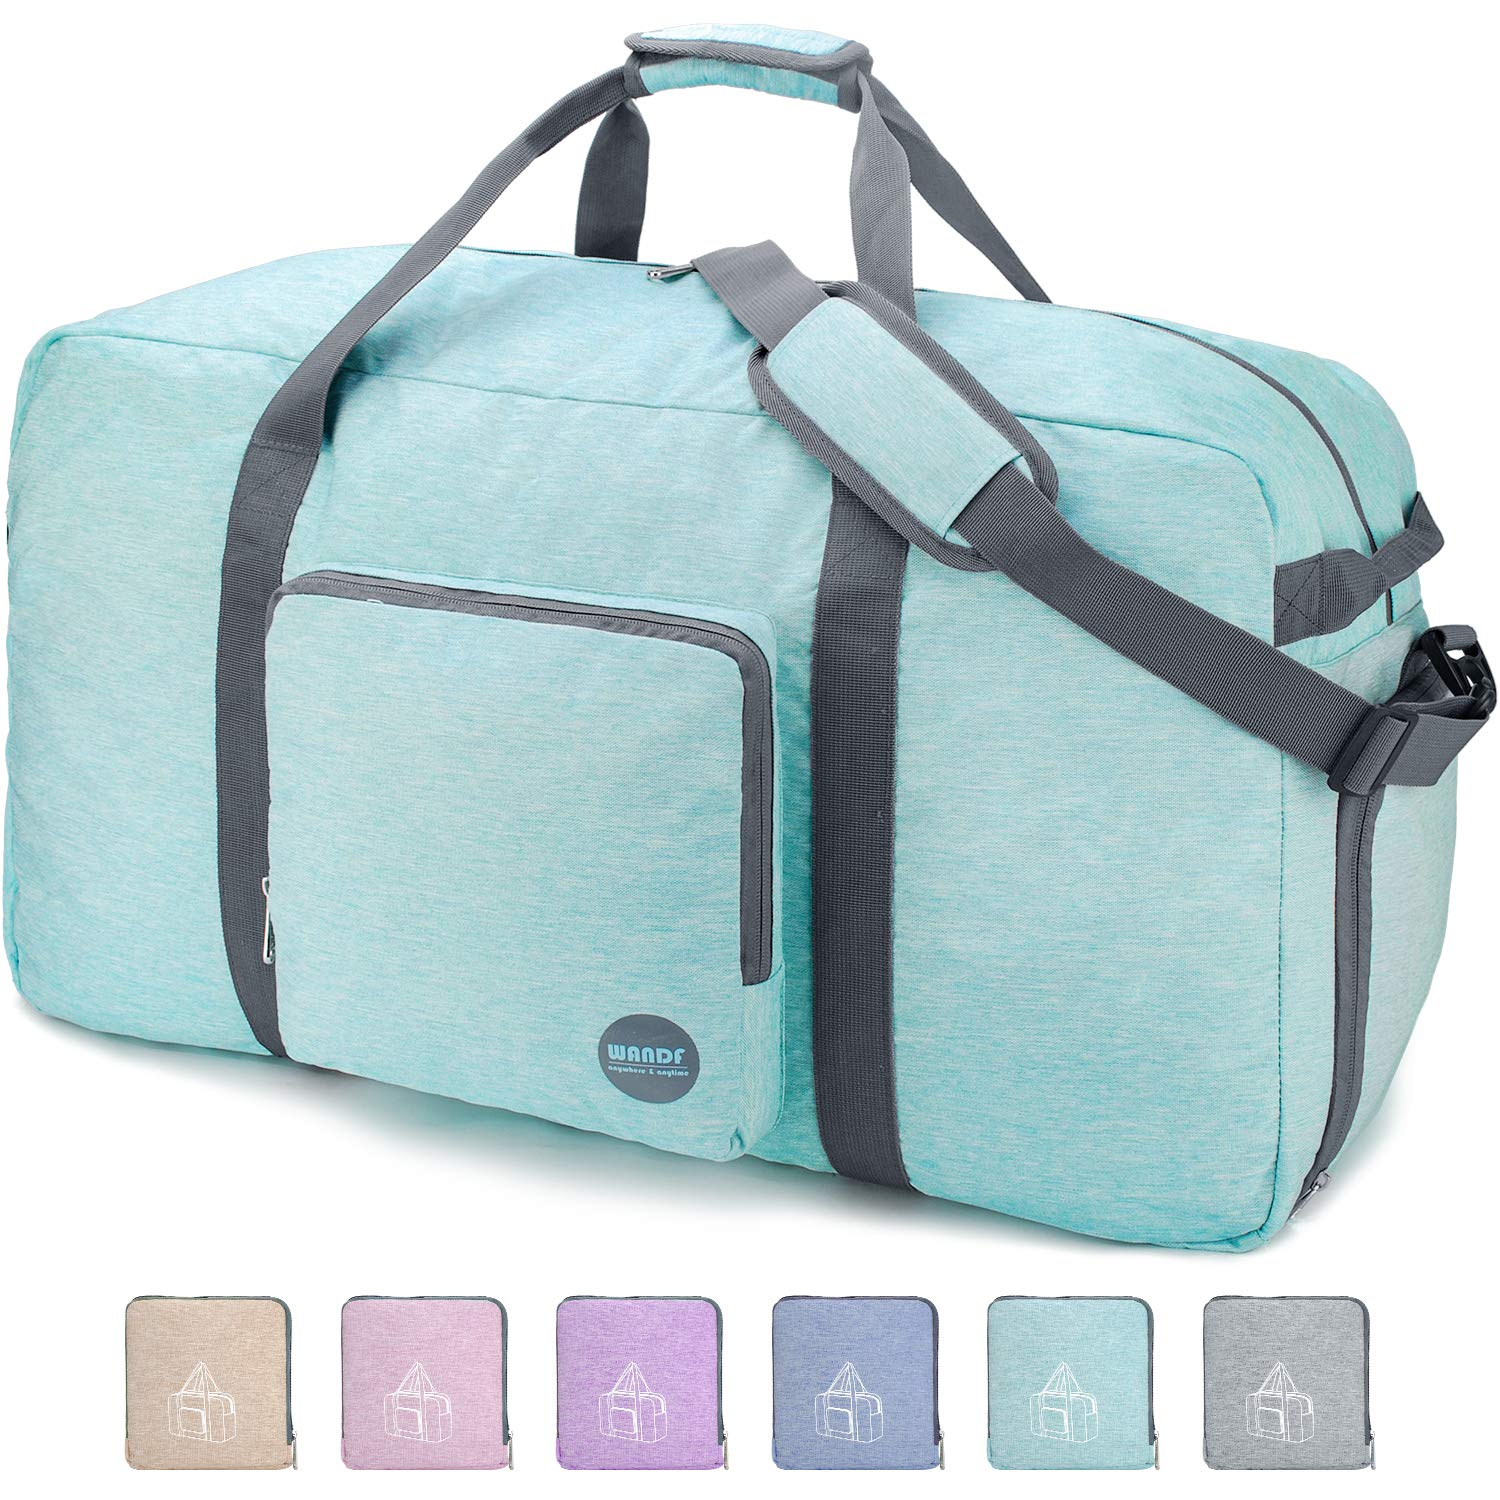 36'' Foldable Duffle Bag 120L for Travel Gym Sports Packable Lightweight Luggage Duffel Water-resistant By WANDF (Light Mint Green, 36 inches (120 Liter))